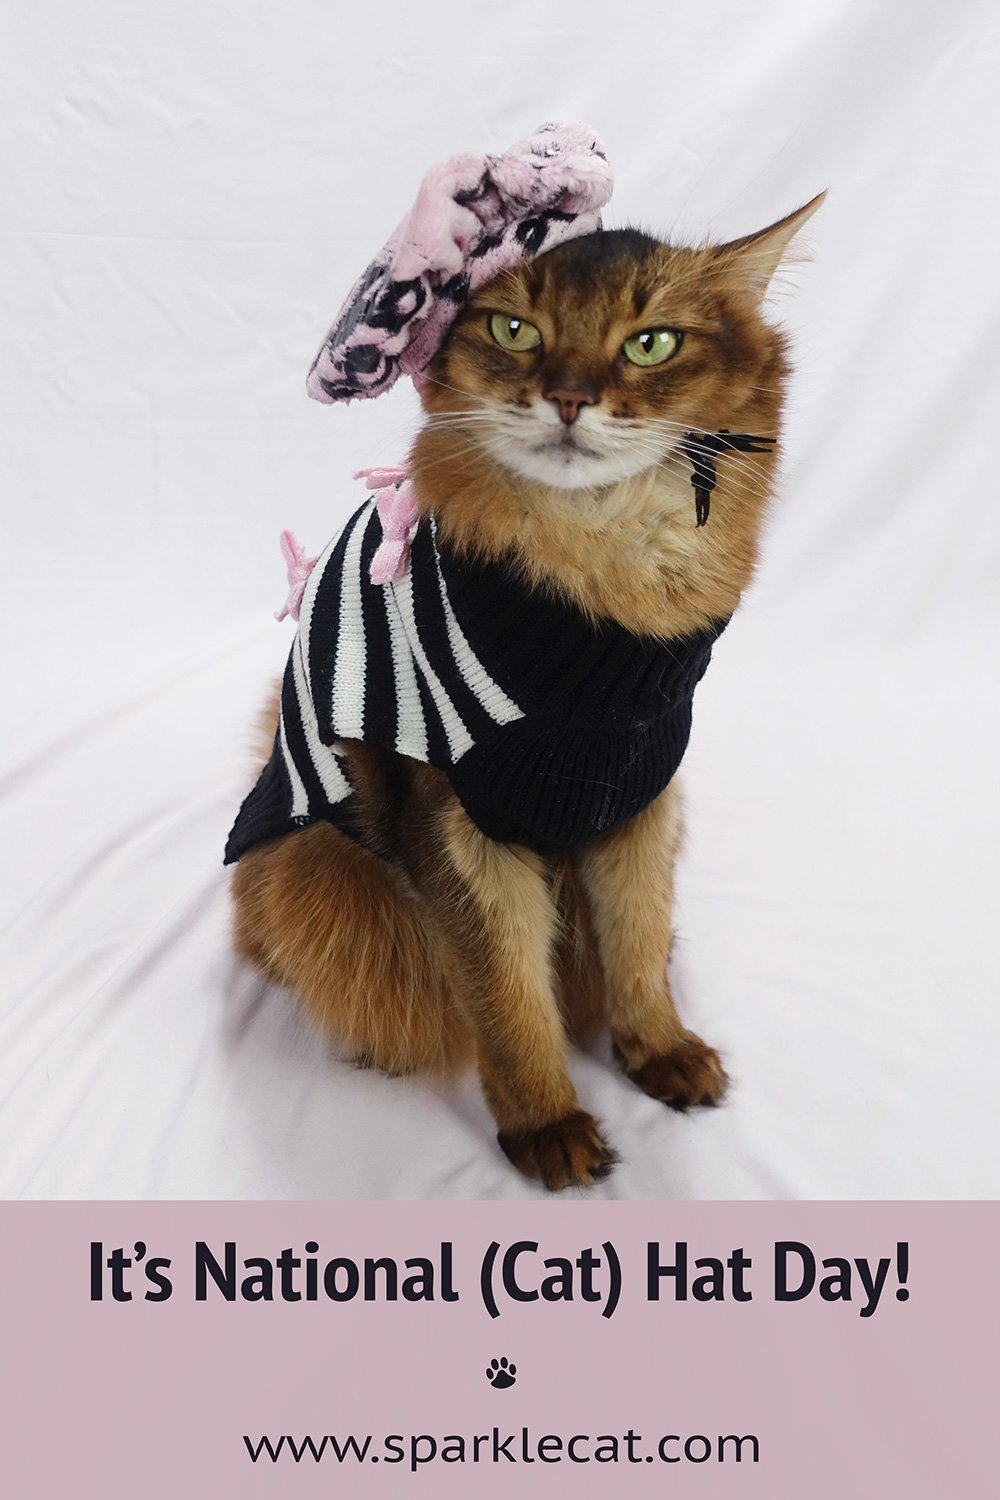 Happy National (Cat) Hat Day!